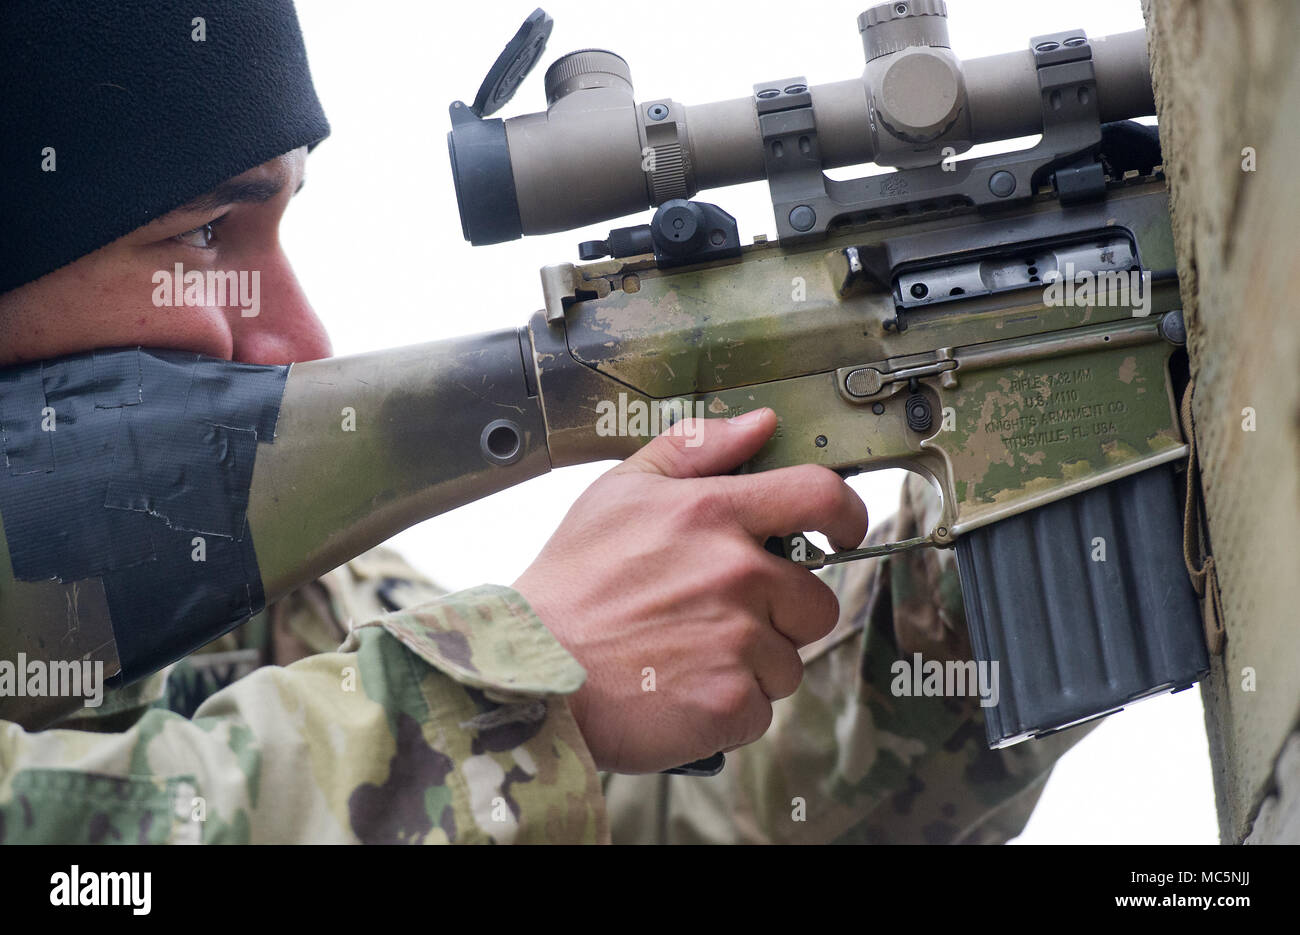 M110 Rifle Stock Photos & M110 Rifle Stock Images - Page 2